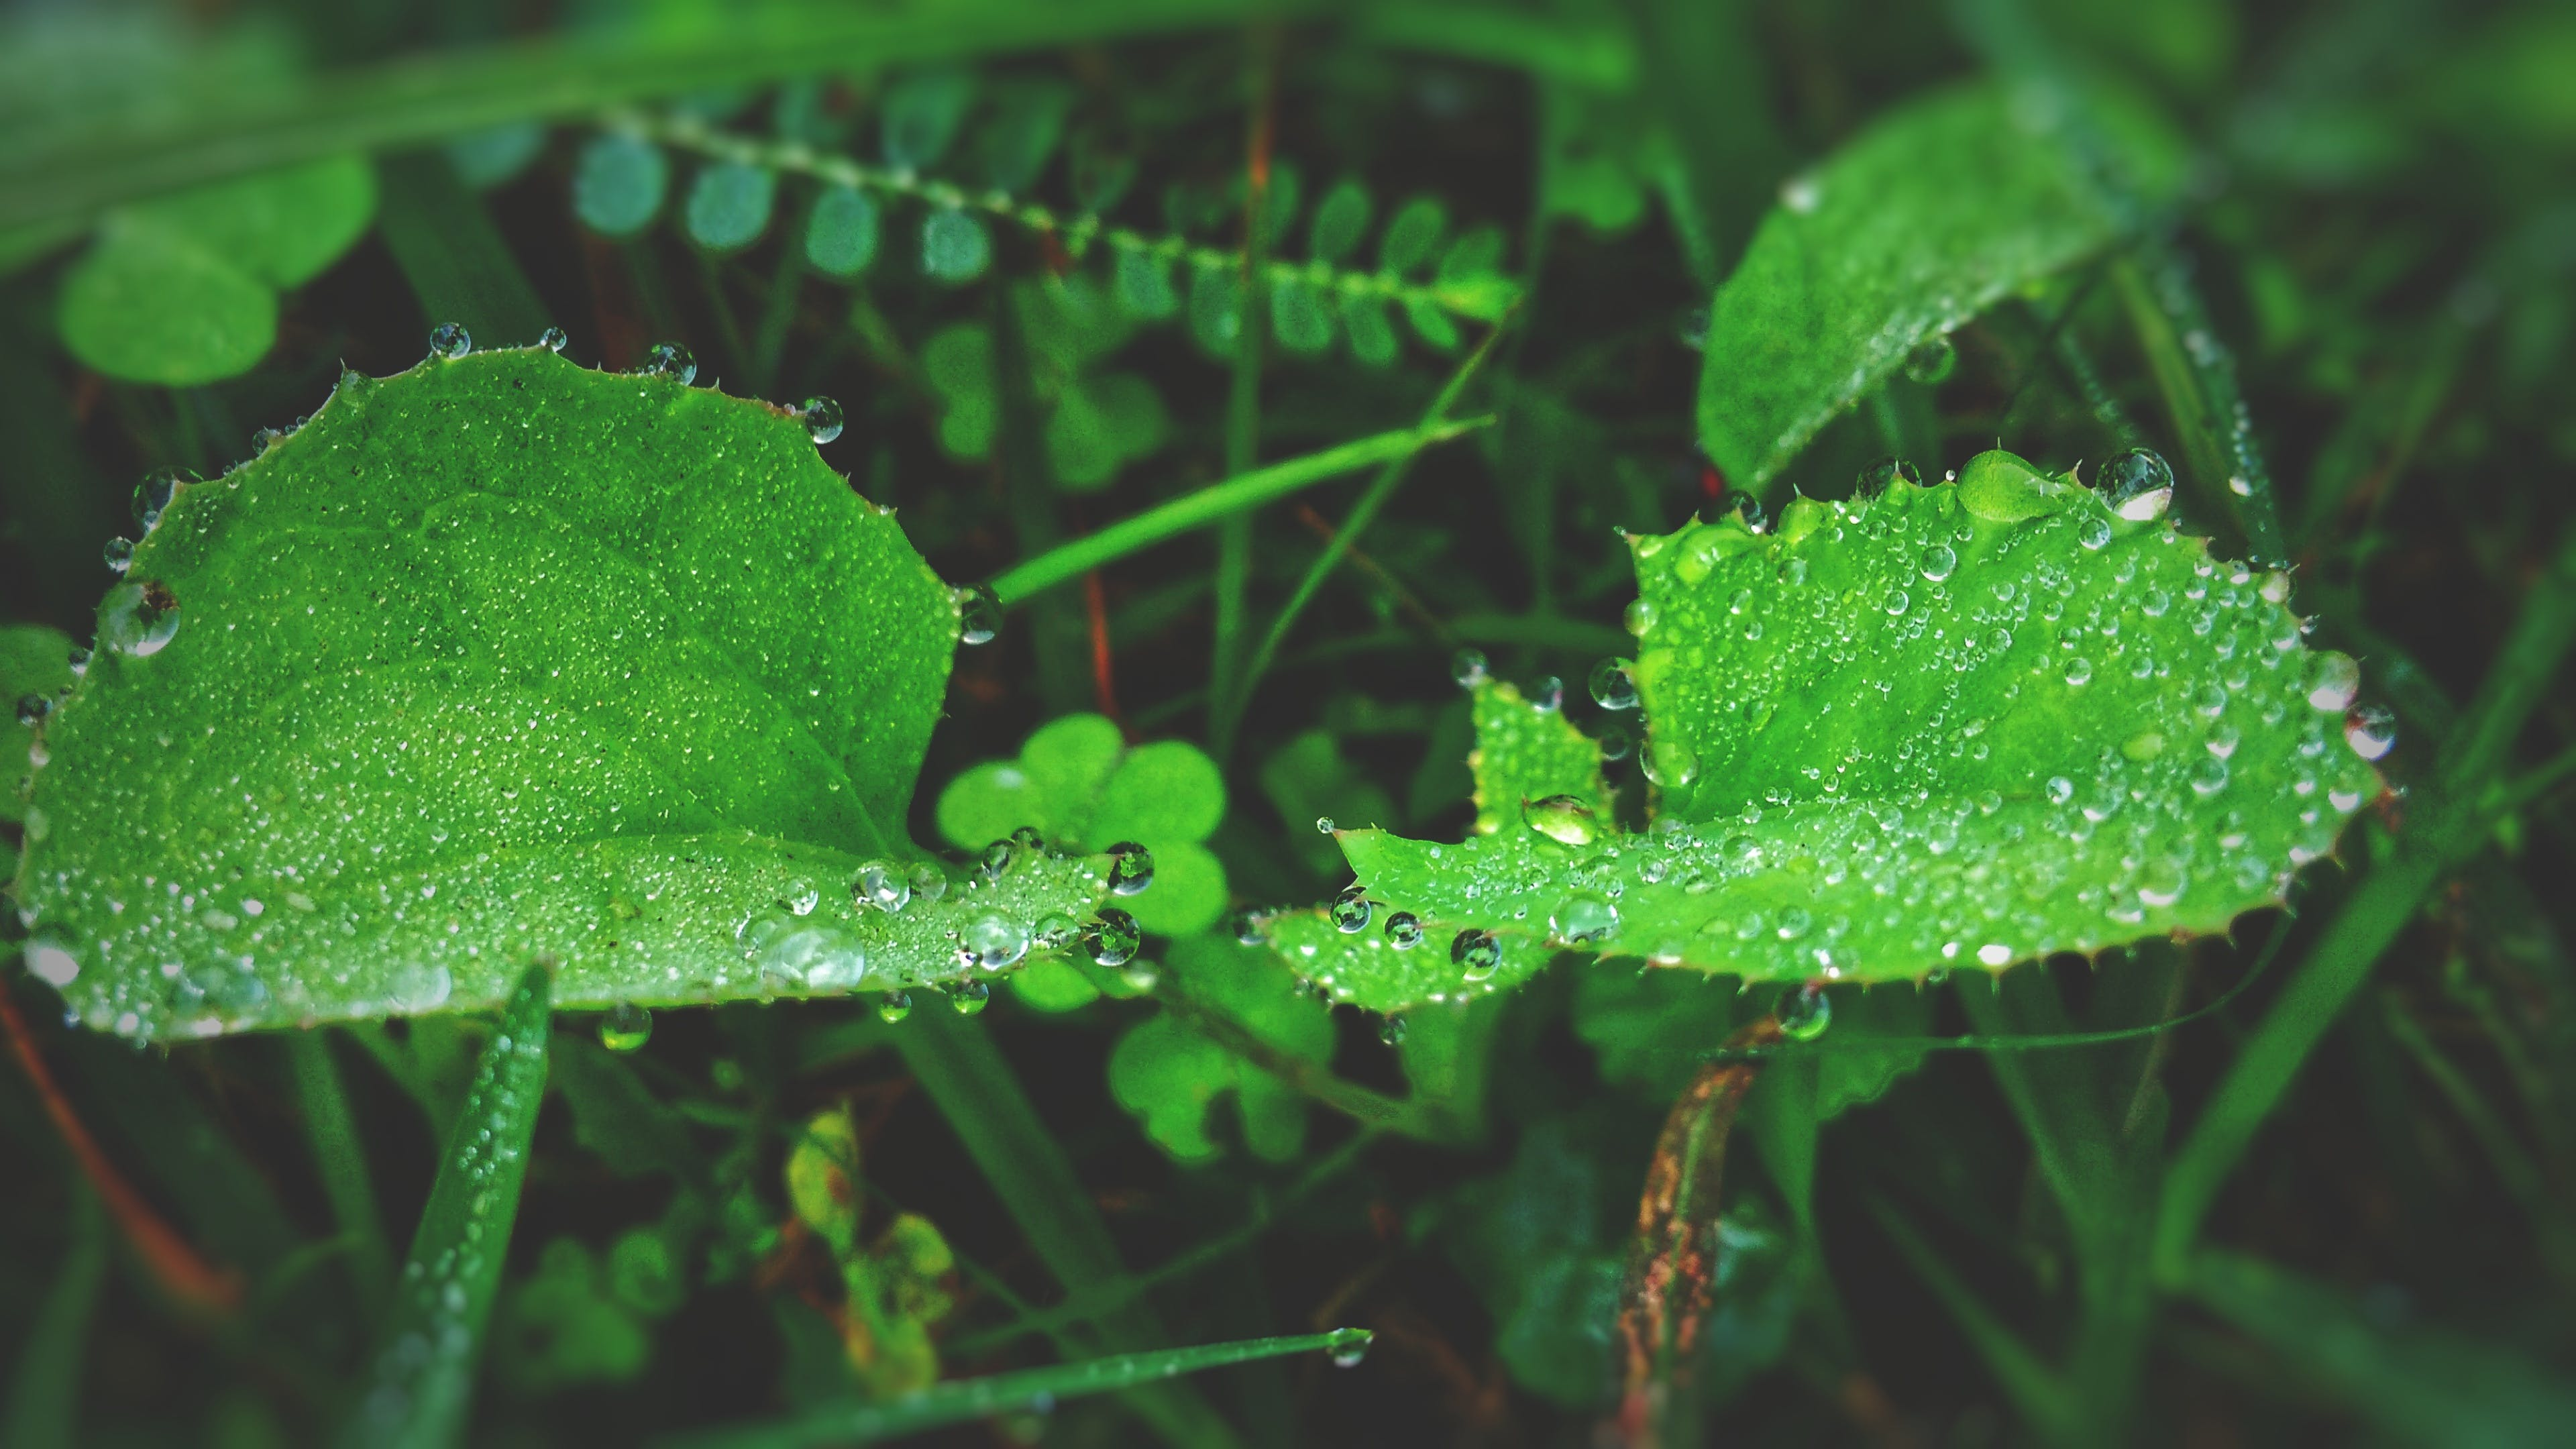 Green Leaf Plant With Raindrops